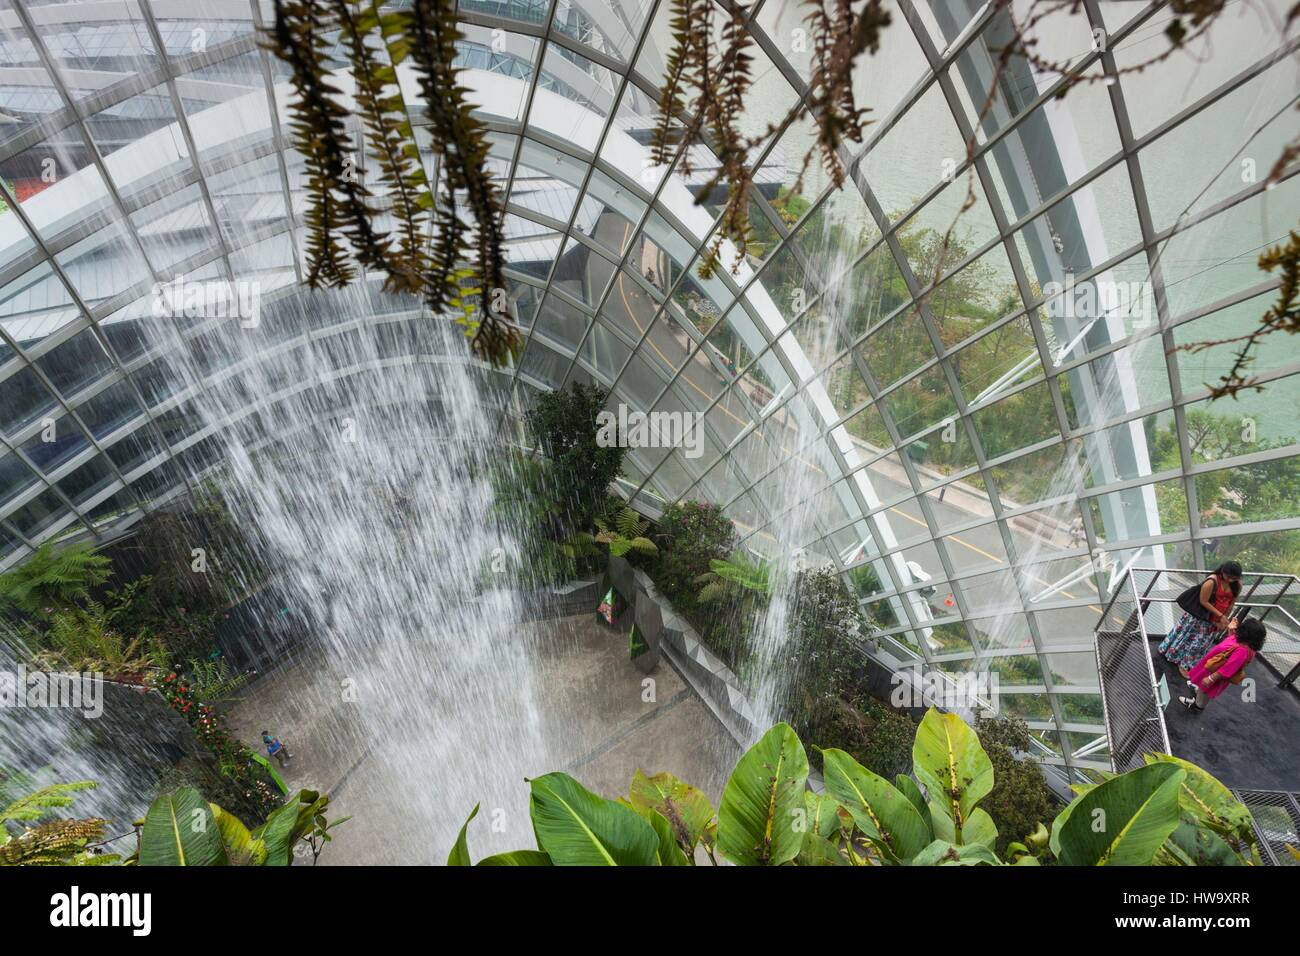 Singapur, Gardens By The Bay, Nebelwald indoor Botanischer Garten ...